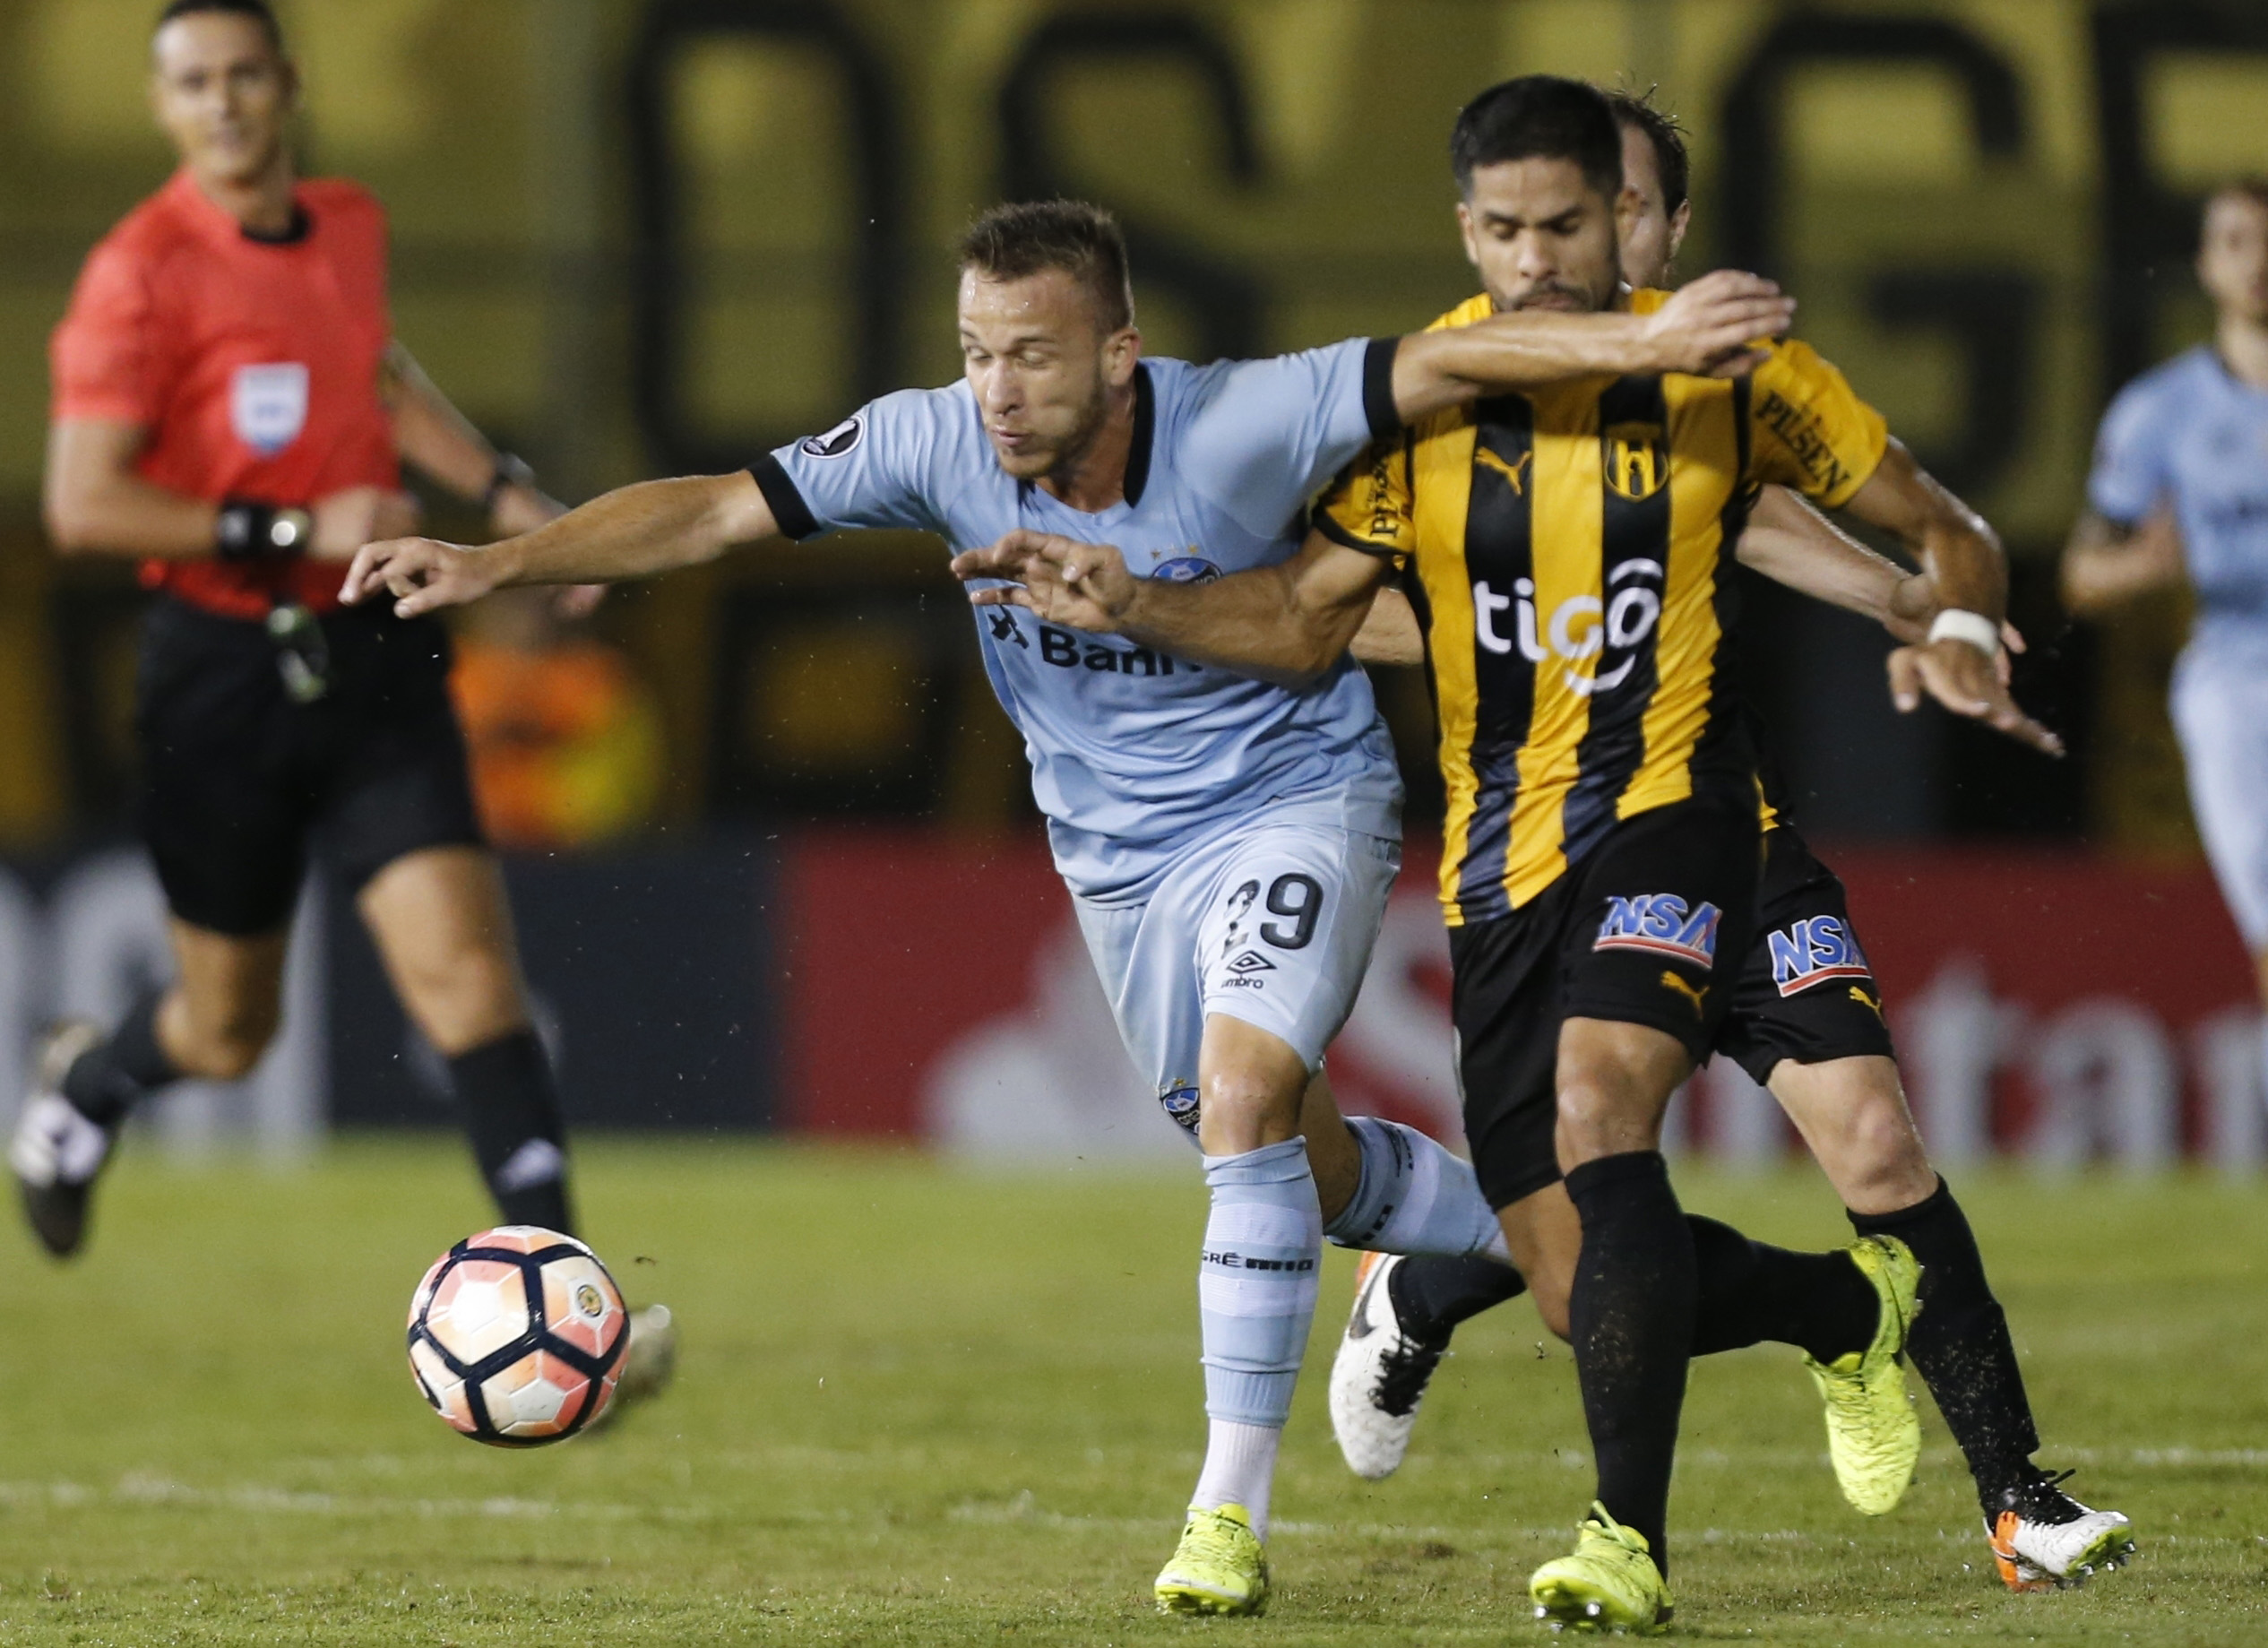 Beto da Silva (left) of Brazil's Gremio fights for the ball with Juan Aguilar of Paraguay's Guarani during a Copa Libertadores soccer game in Asuncion, Paraguay on Thursday.